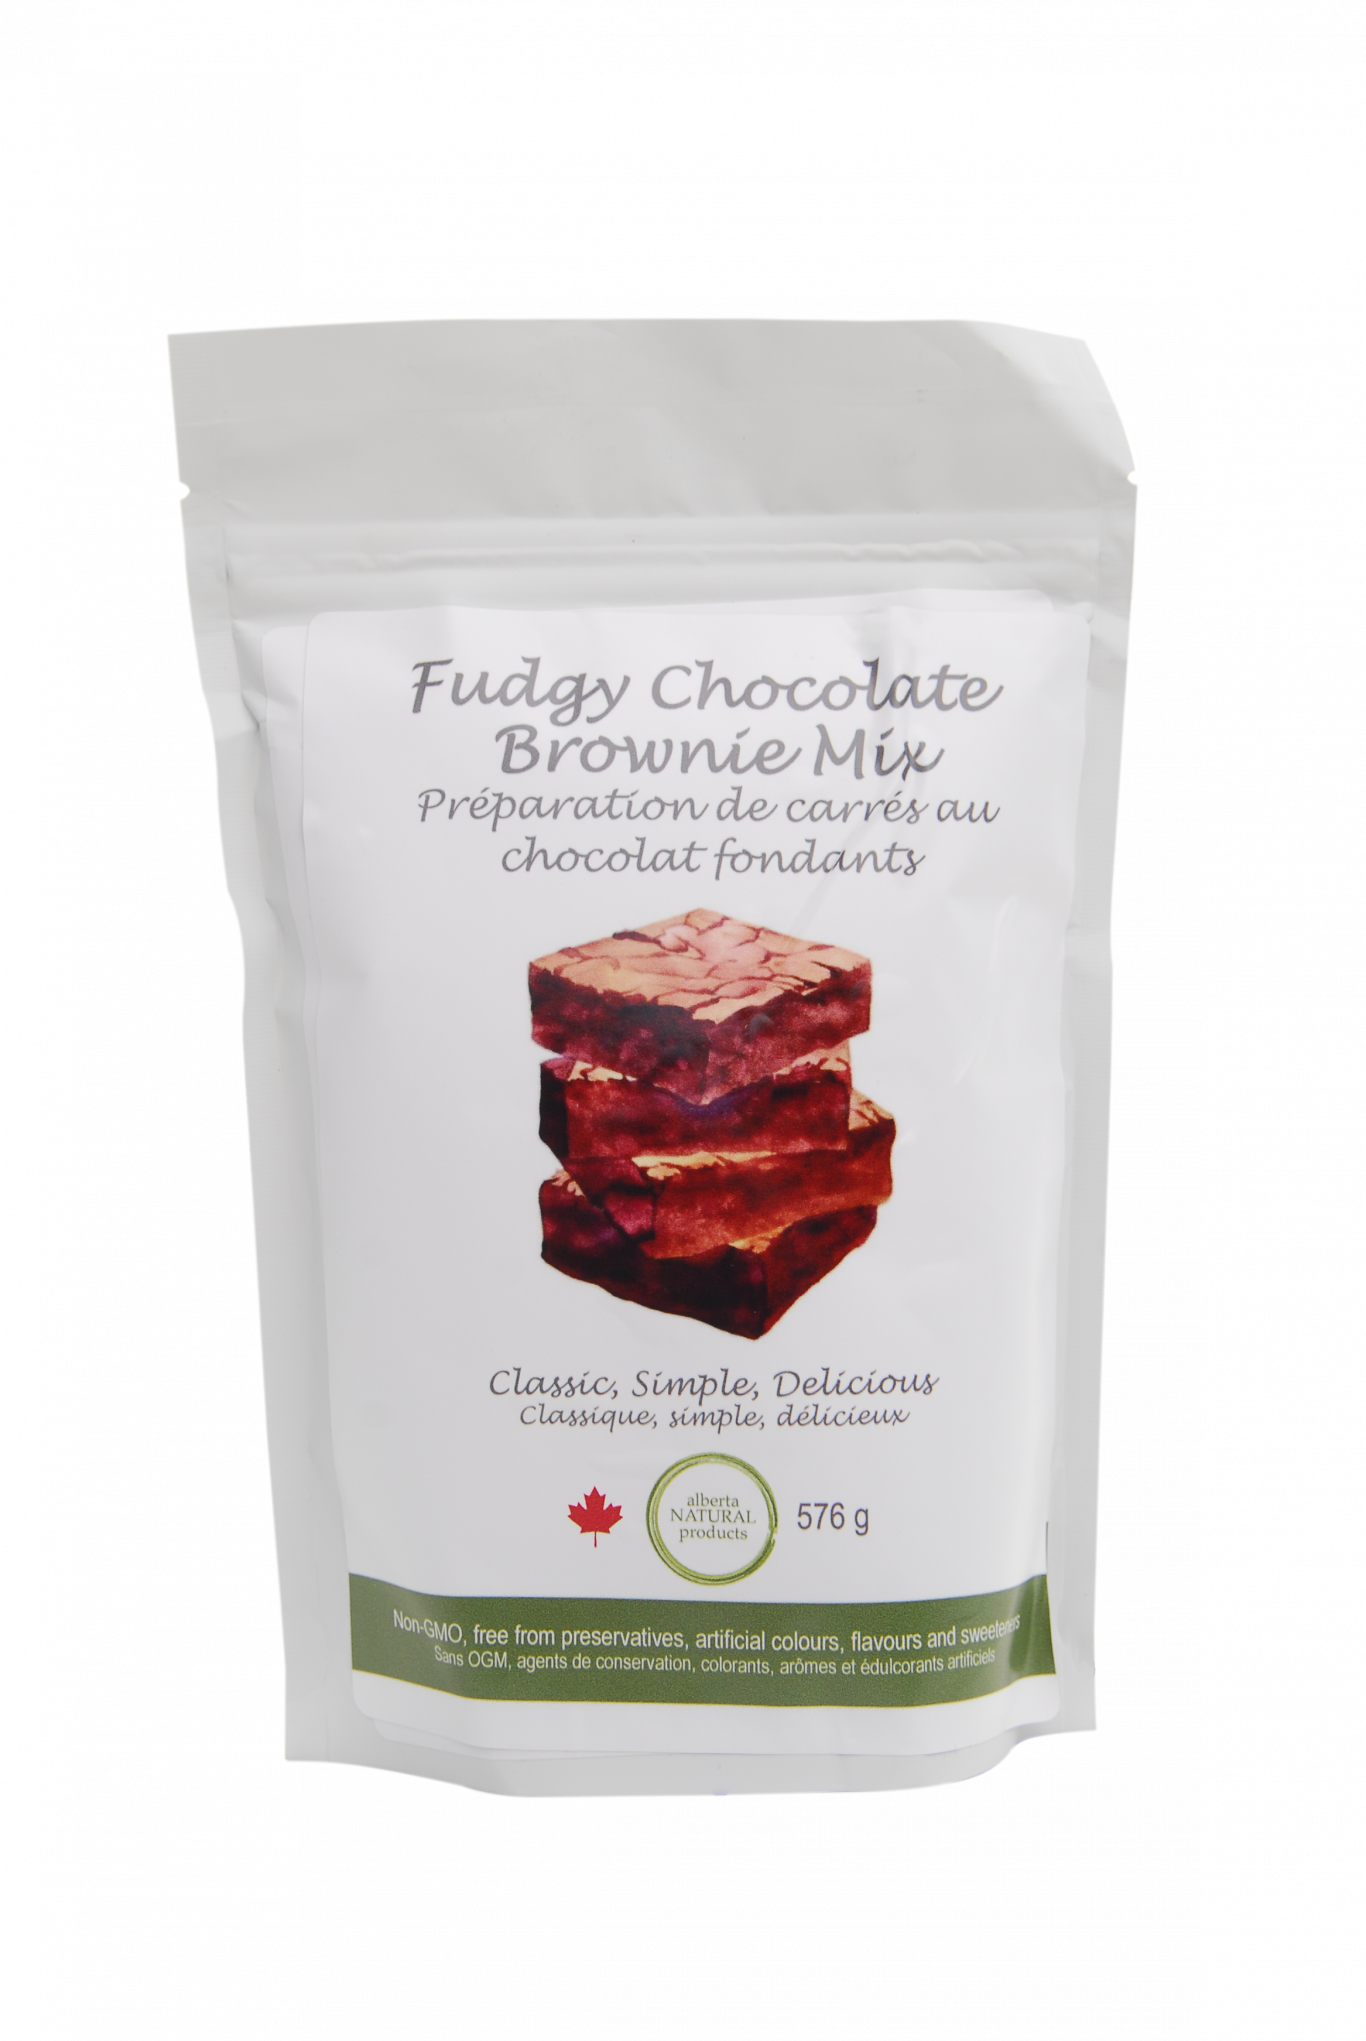 Fudgy Chocoate Brownie mix